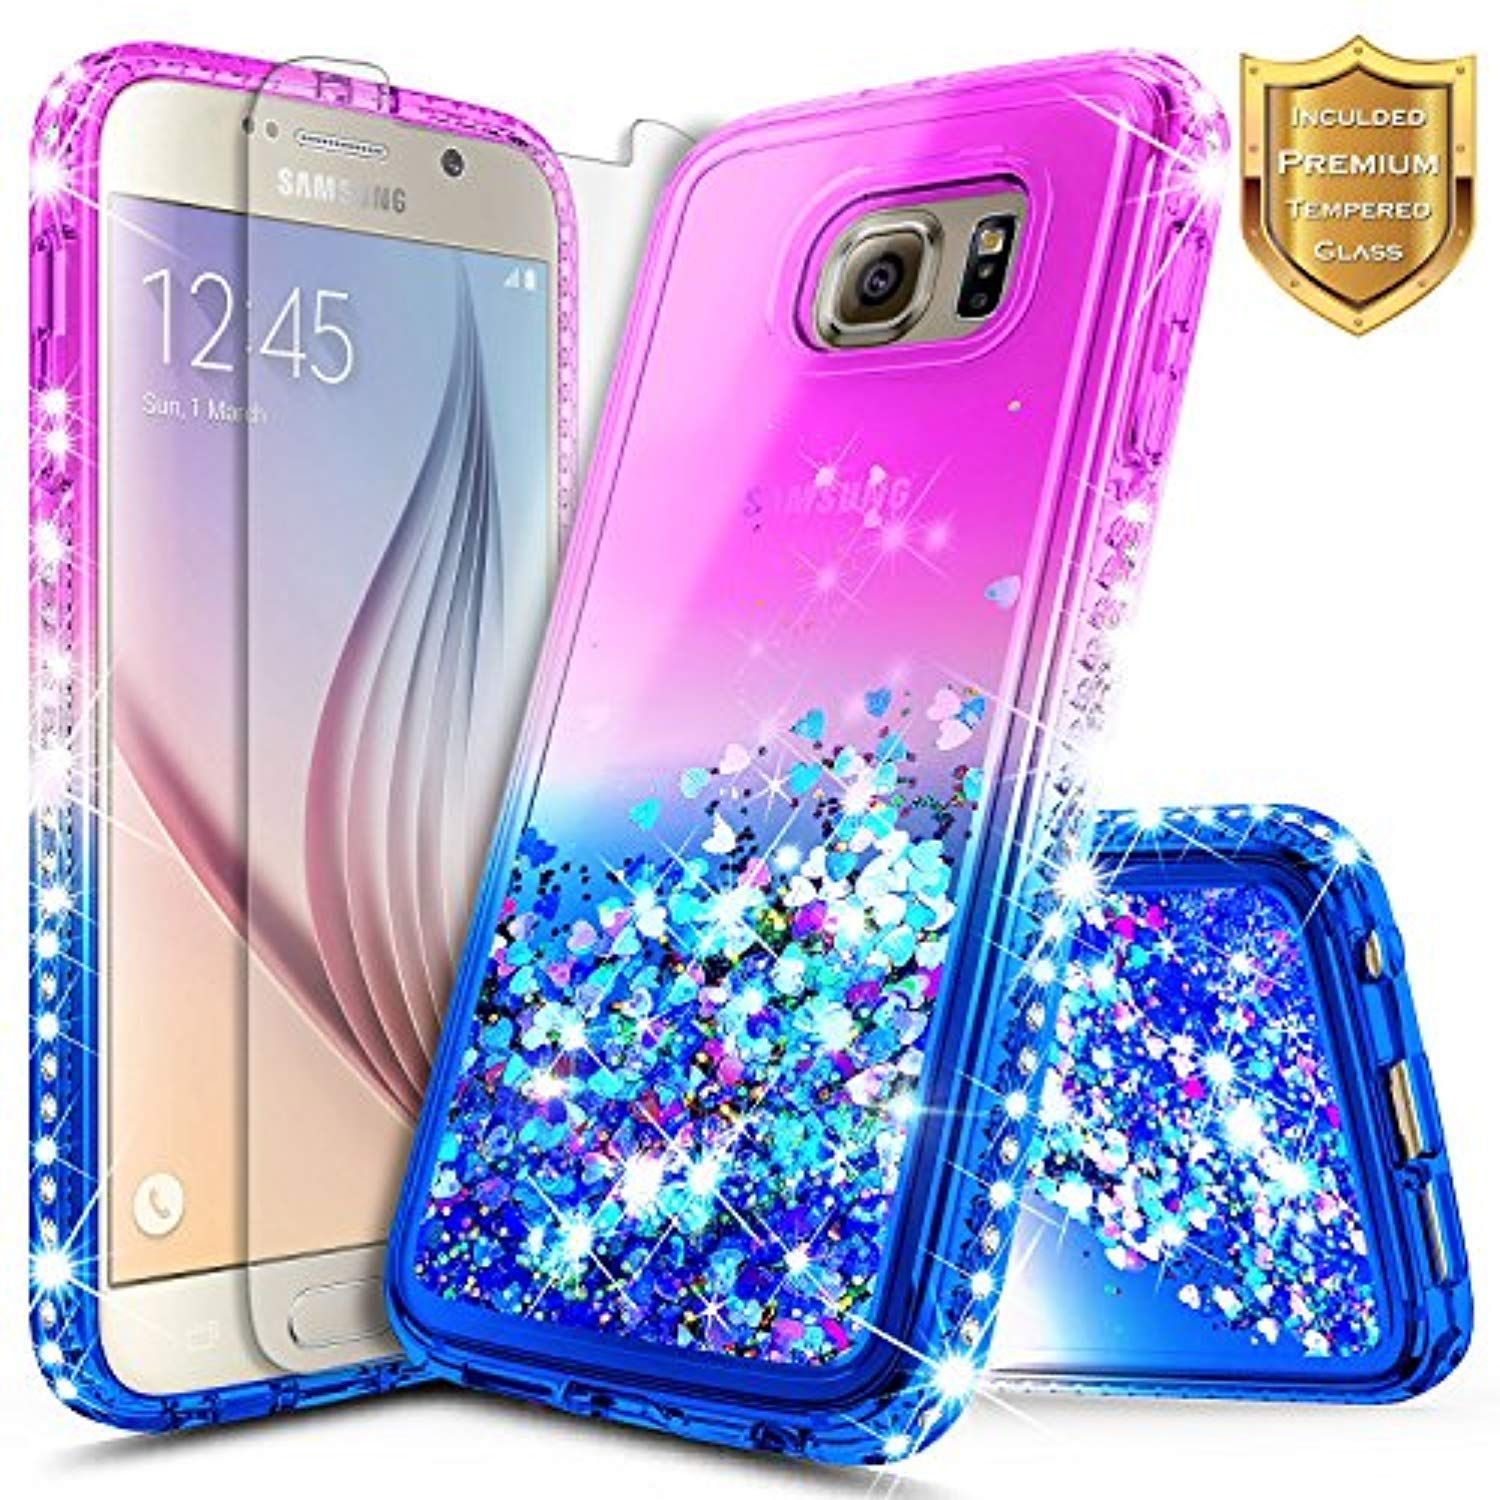 0b0a4b31adc Galaxy Note 5 Case w  Tempered Glass Screen Protector